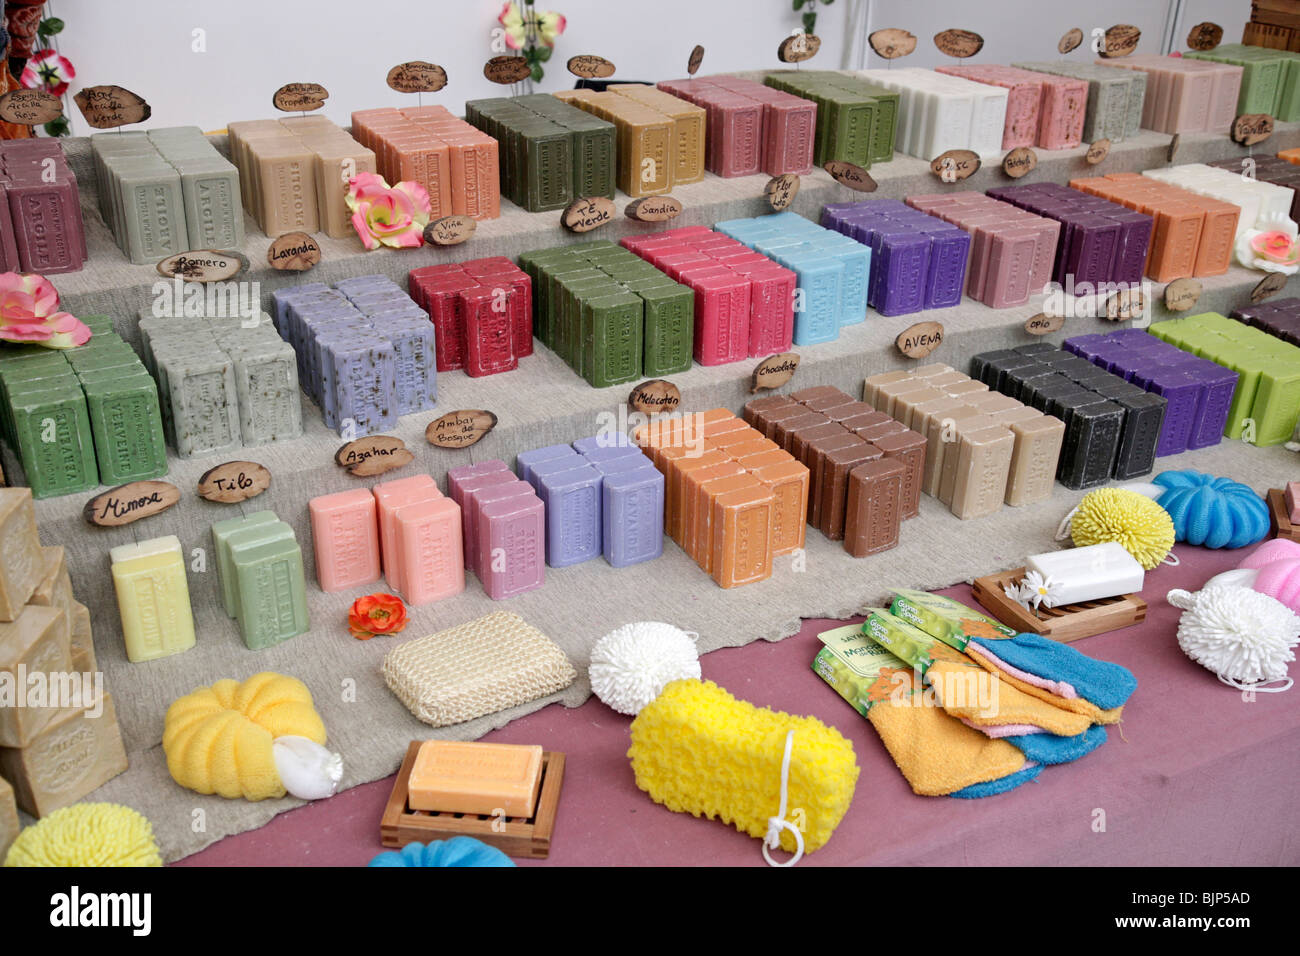 Natural soaps. Fira Natura. Lleida, Catalonia, Spain. Stock Photo